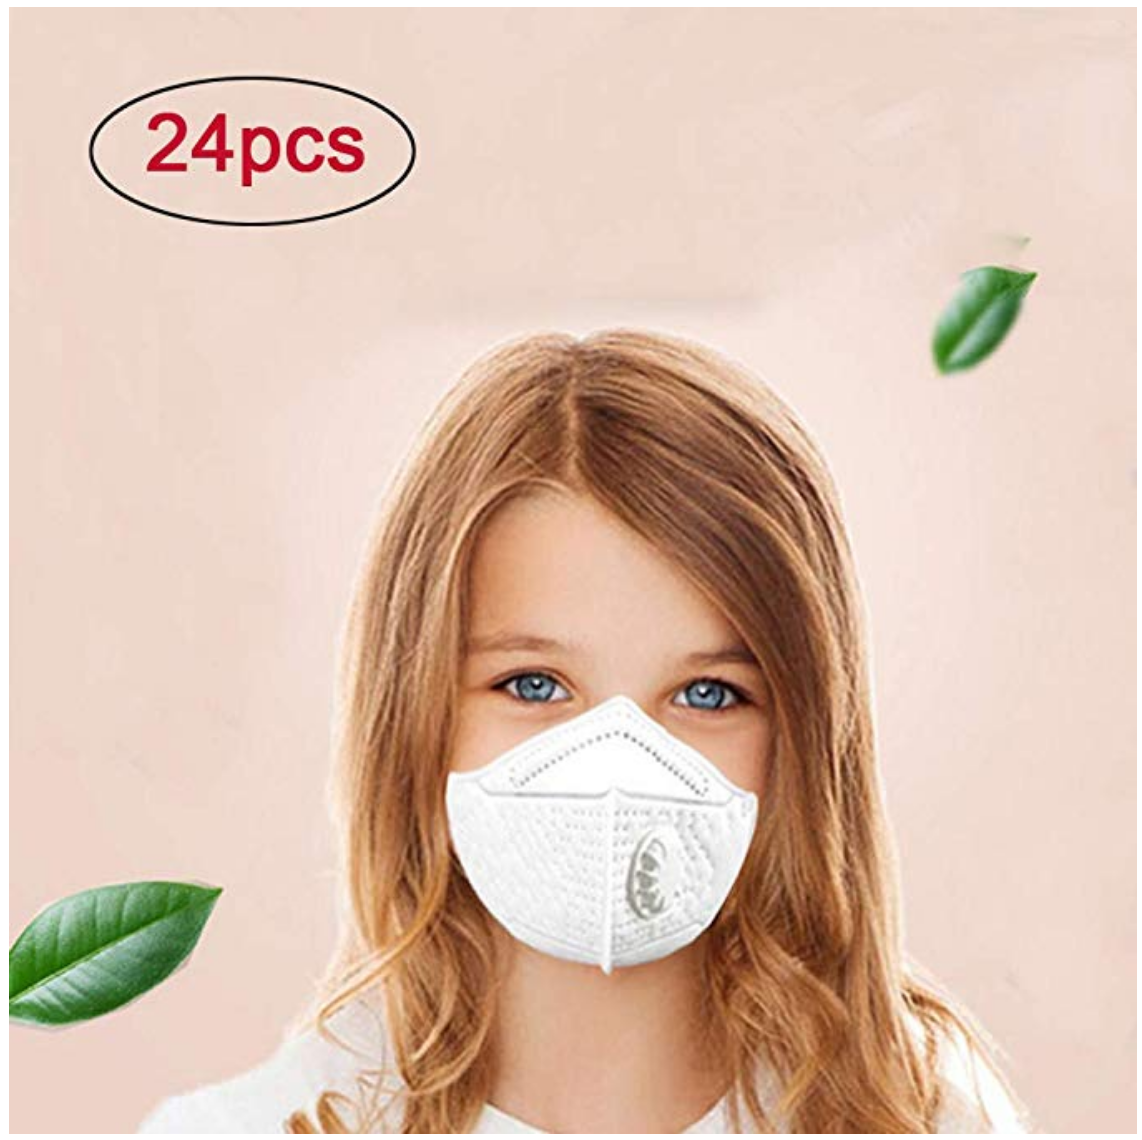 FILTERS THE AIR YOU BREATH IN Our N95 mask/ hayfever